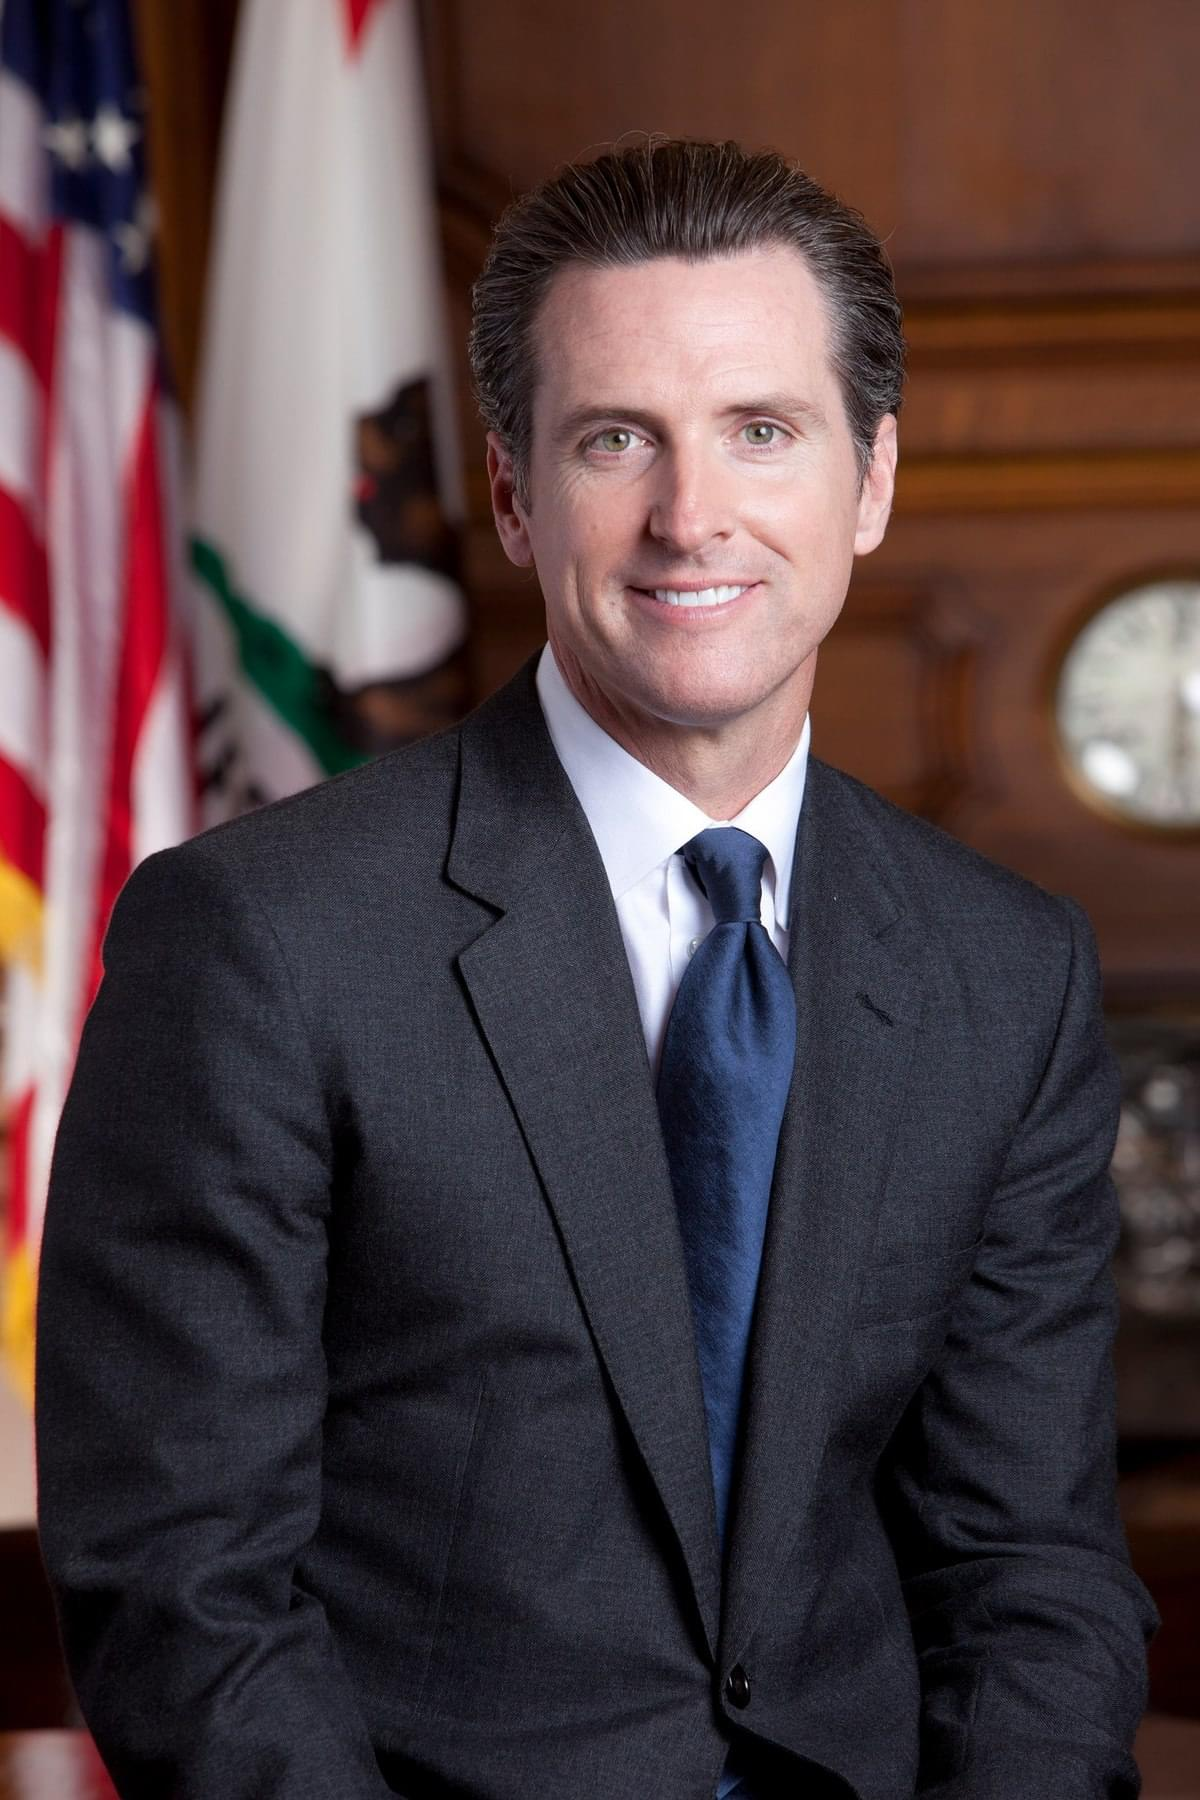 GOVERNOR NEWSOM ORDERS INVESTIGATION ON STATE'S HIGH GAS PRICES